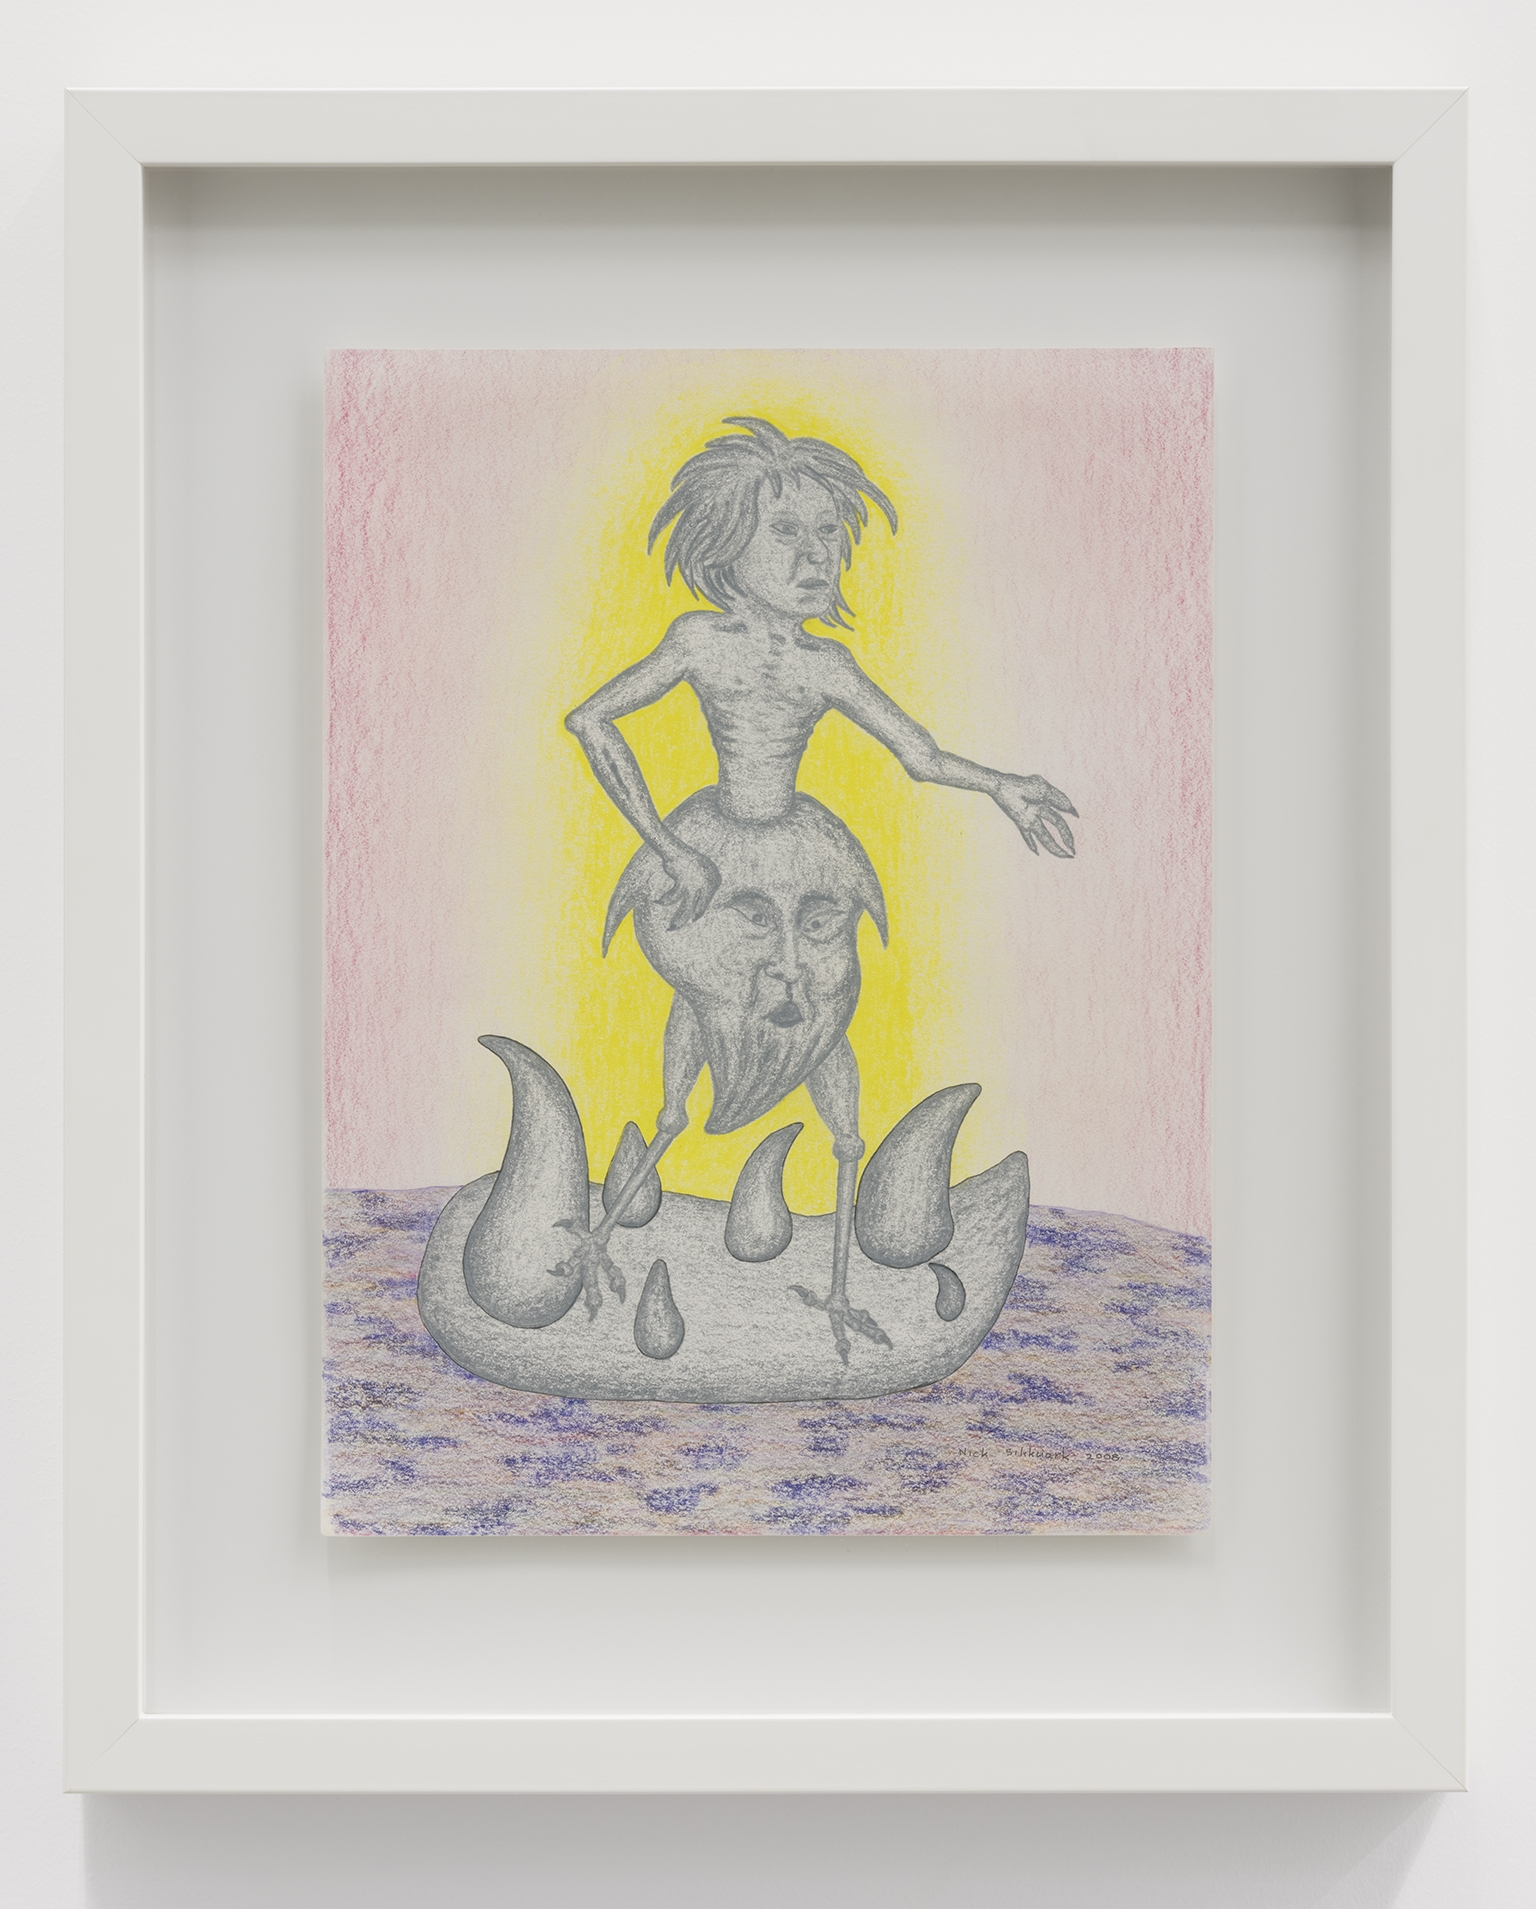 Nick Sikkuark, untitled (spirit), 2008, coloured pencil on paper, 16 x 12 in. (41 x 29 cm) by